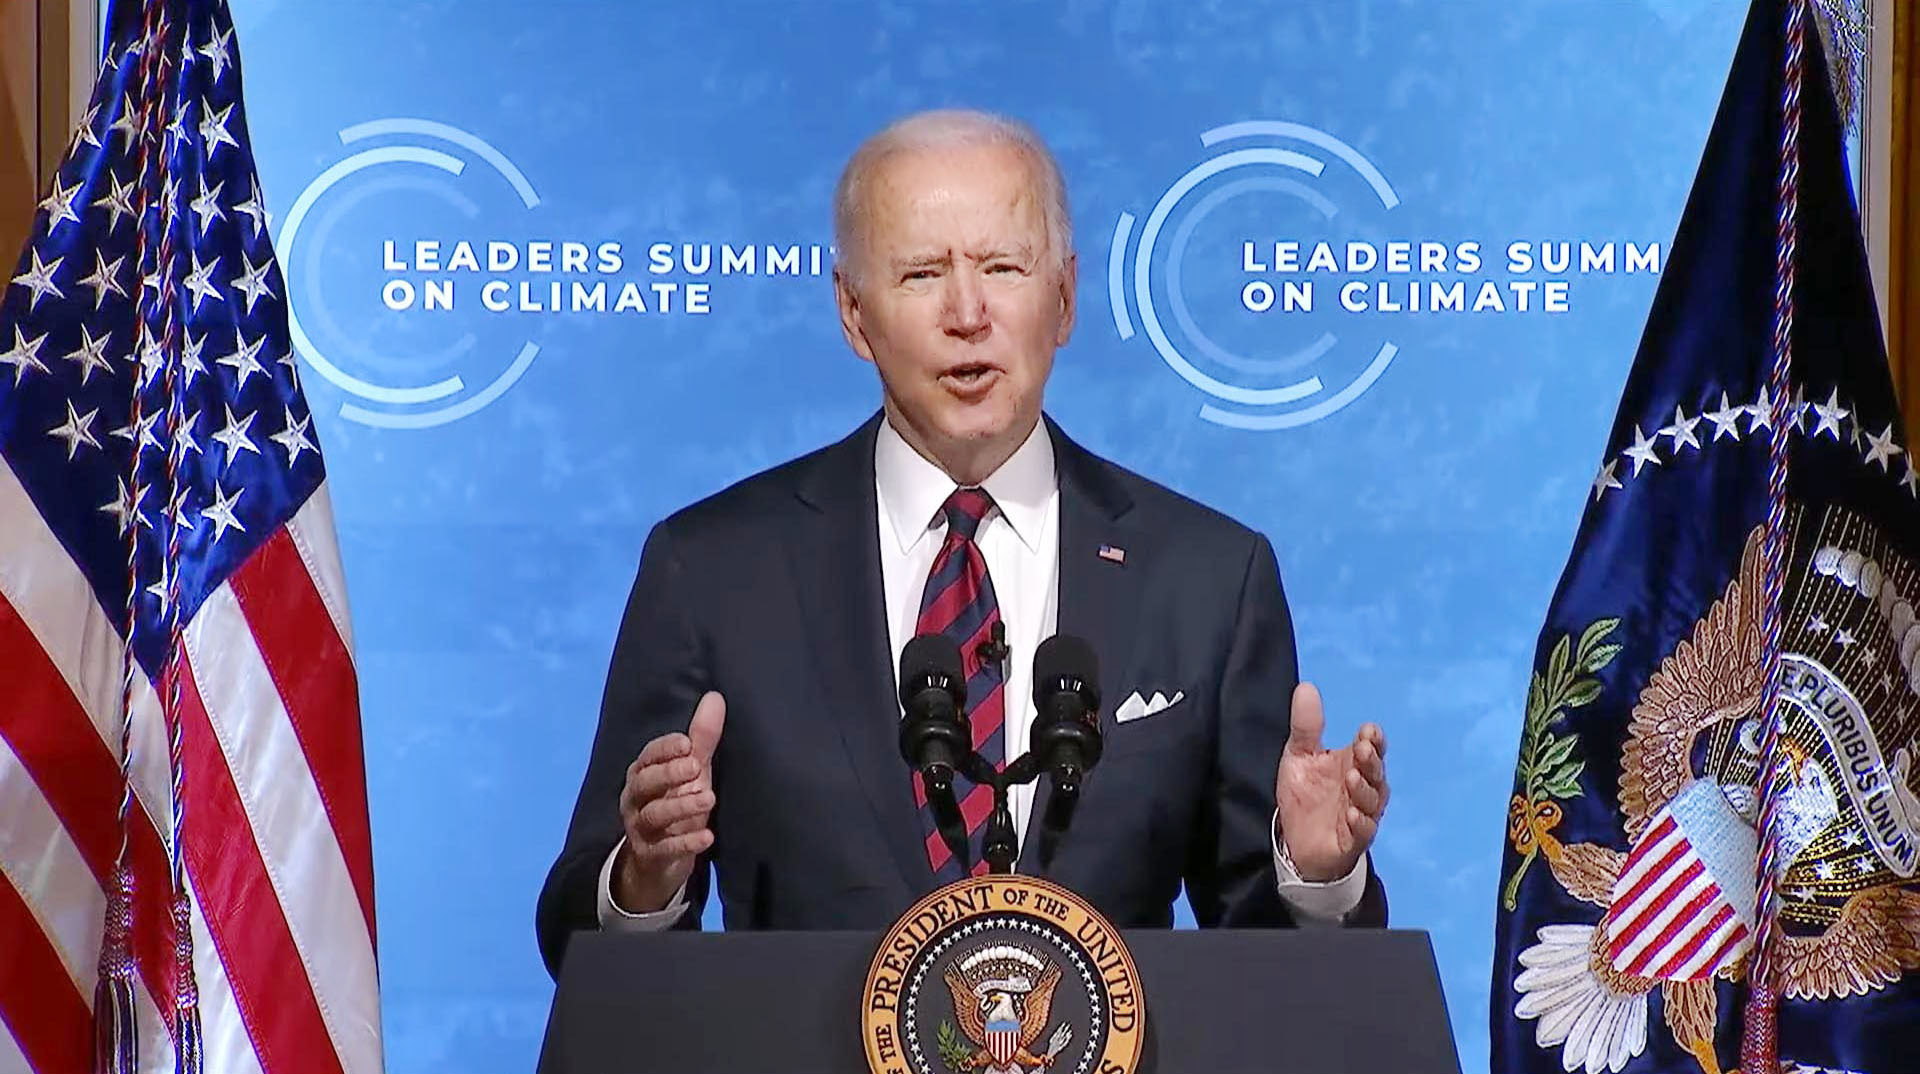 Brookings experts comment on Biden's climate summit